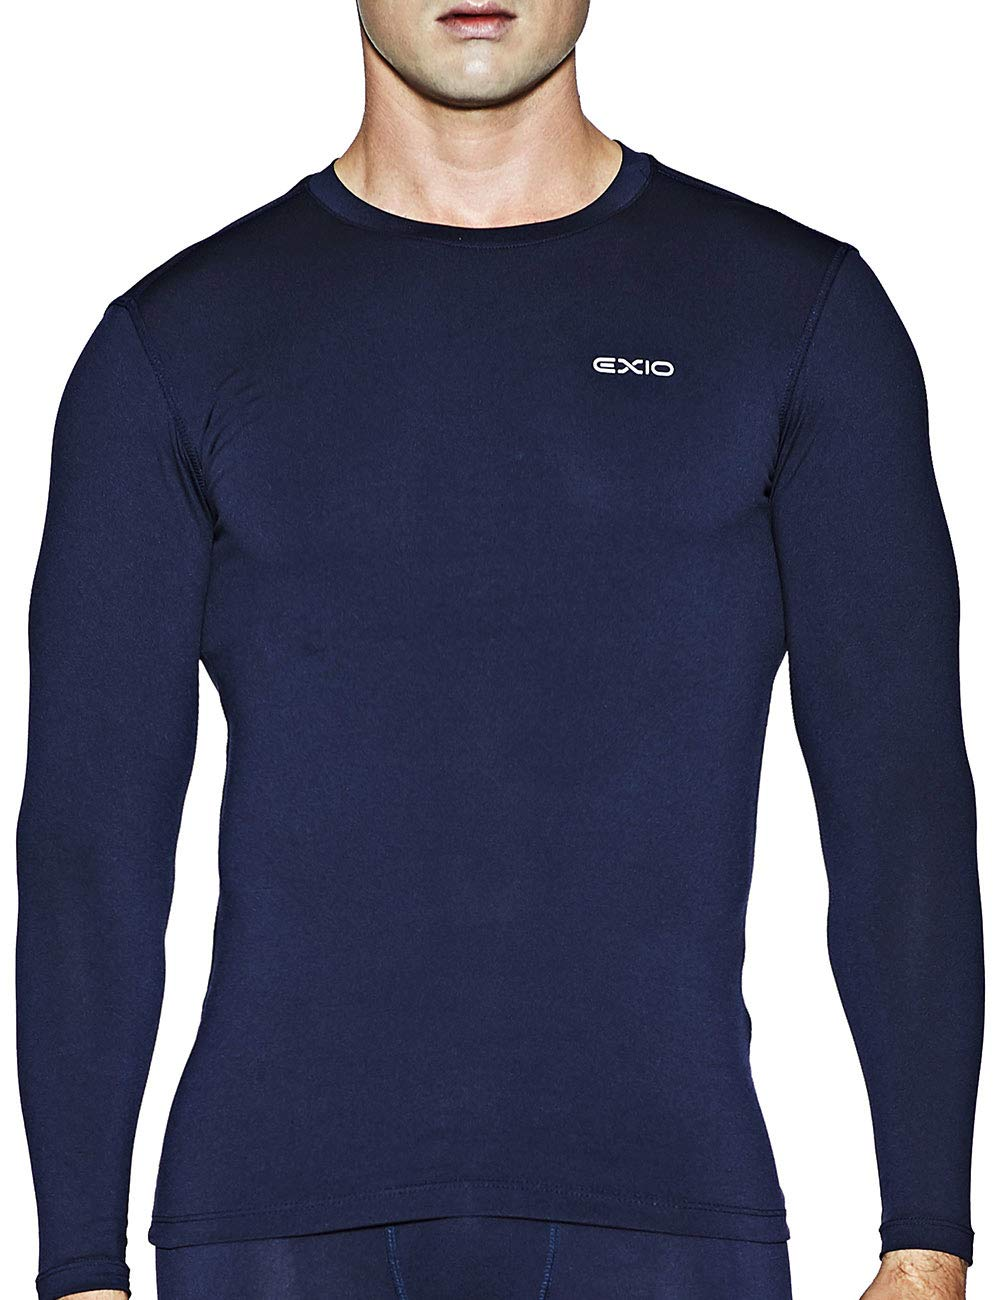 EXIO Japan Men's Compression Shirt Cool&Dry Baselayer/Underlayer Long Sleeve Top EX-R01 (Small, EXR01-NV)